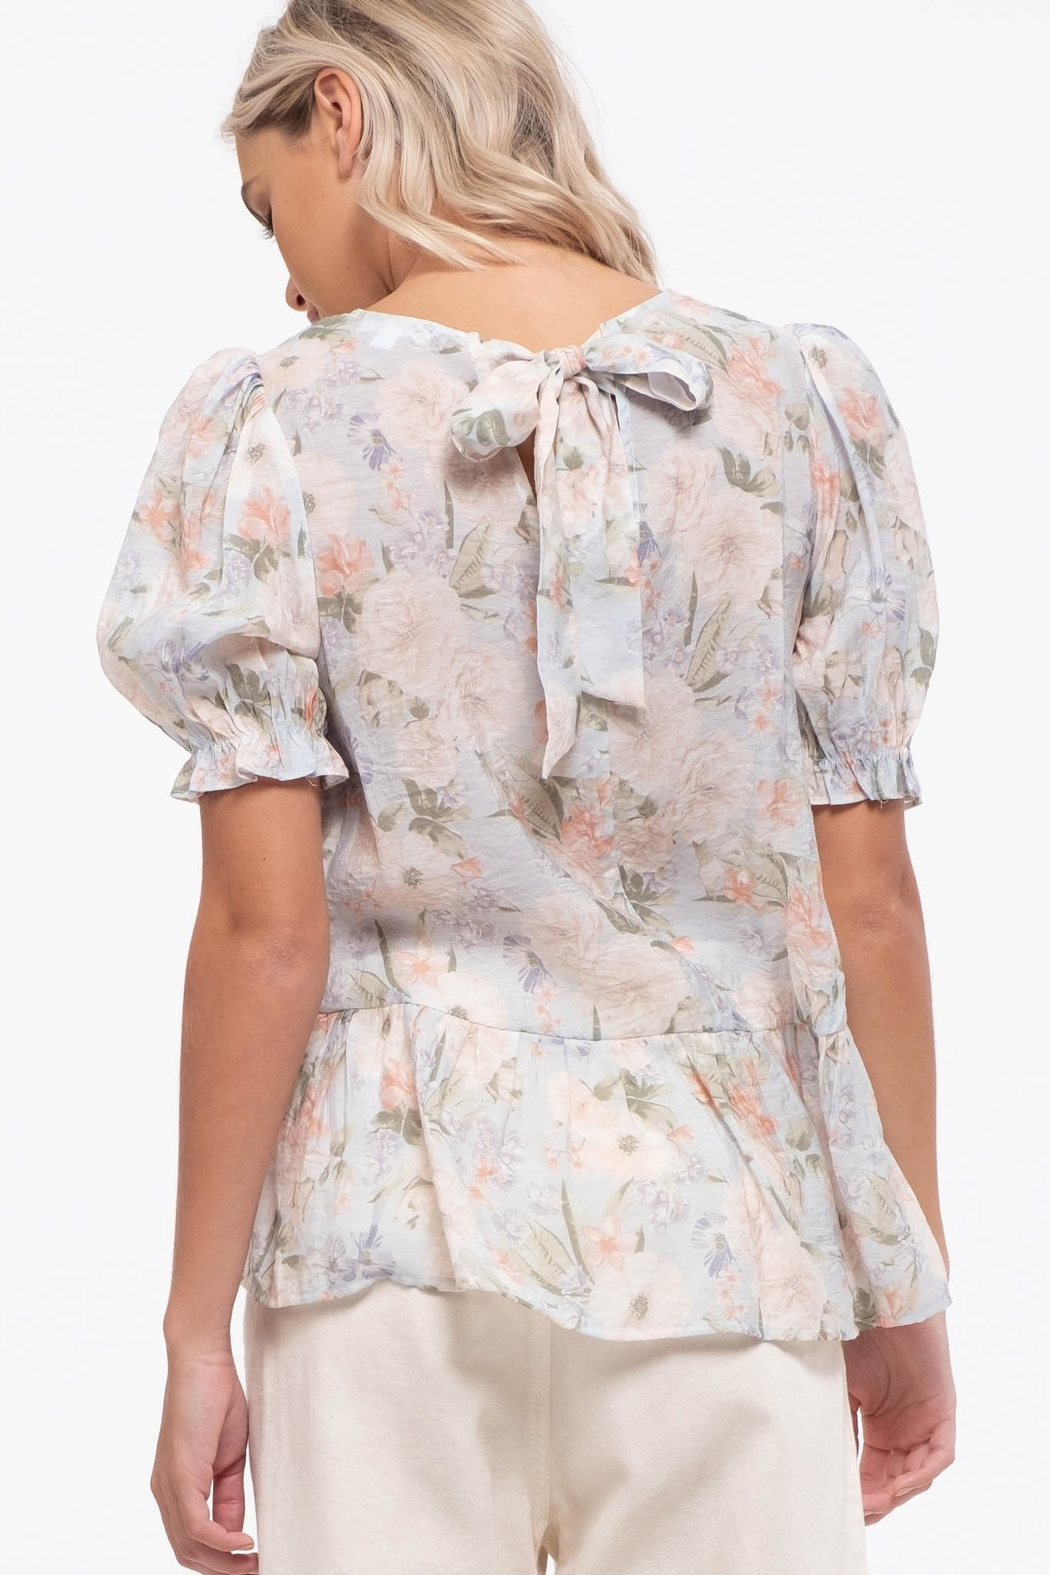 blu Pepper  Floral Print Woven Top - Side Cropped Image